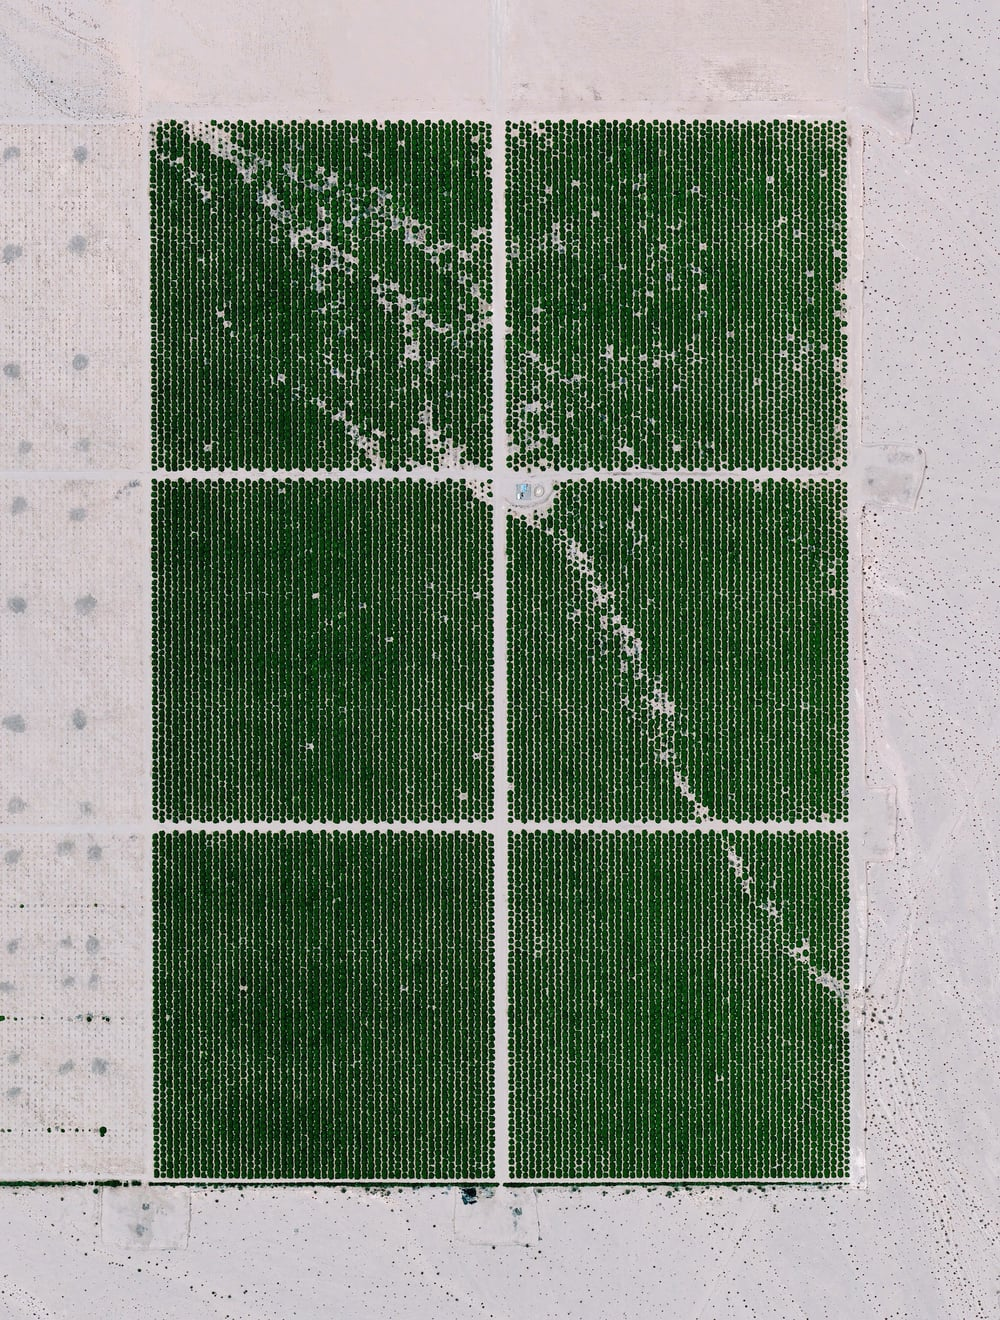 1/12/2015  Cadiz Ranch  Mojave Desert, California, USA  34.494638, -115.500469     Cadiz Ranch in Essex, California is located in the middle of the Mojave Desert. The organic farm grows lemons, table grapes (dried and turned into raisins) and squash on more than 300 acres of irrigated desert. This is made possible by seven wells that pump 2,000 gallons of water per minute at all times from an underground aquifer - a layer of water-bearing permeable rock from which water can be extracted.